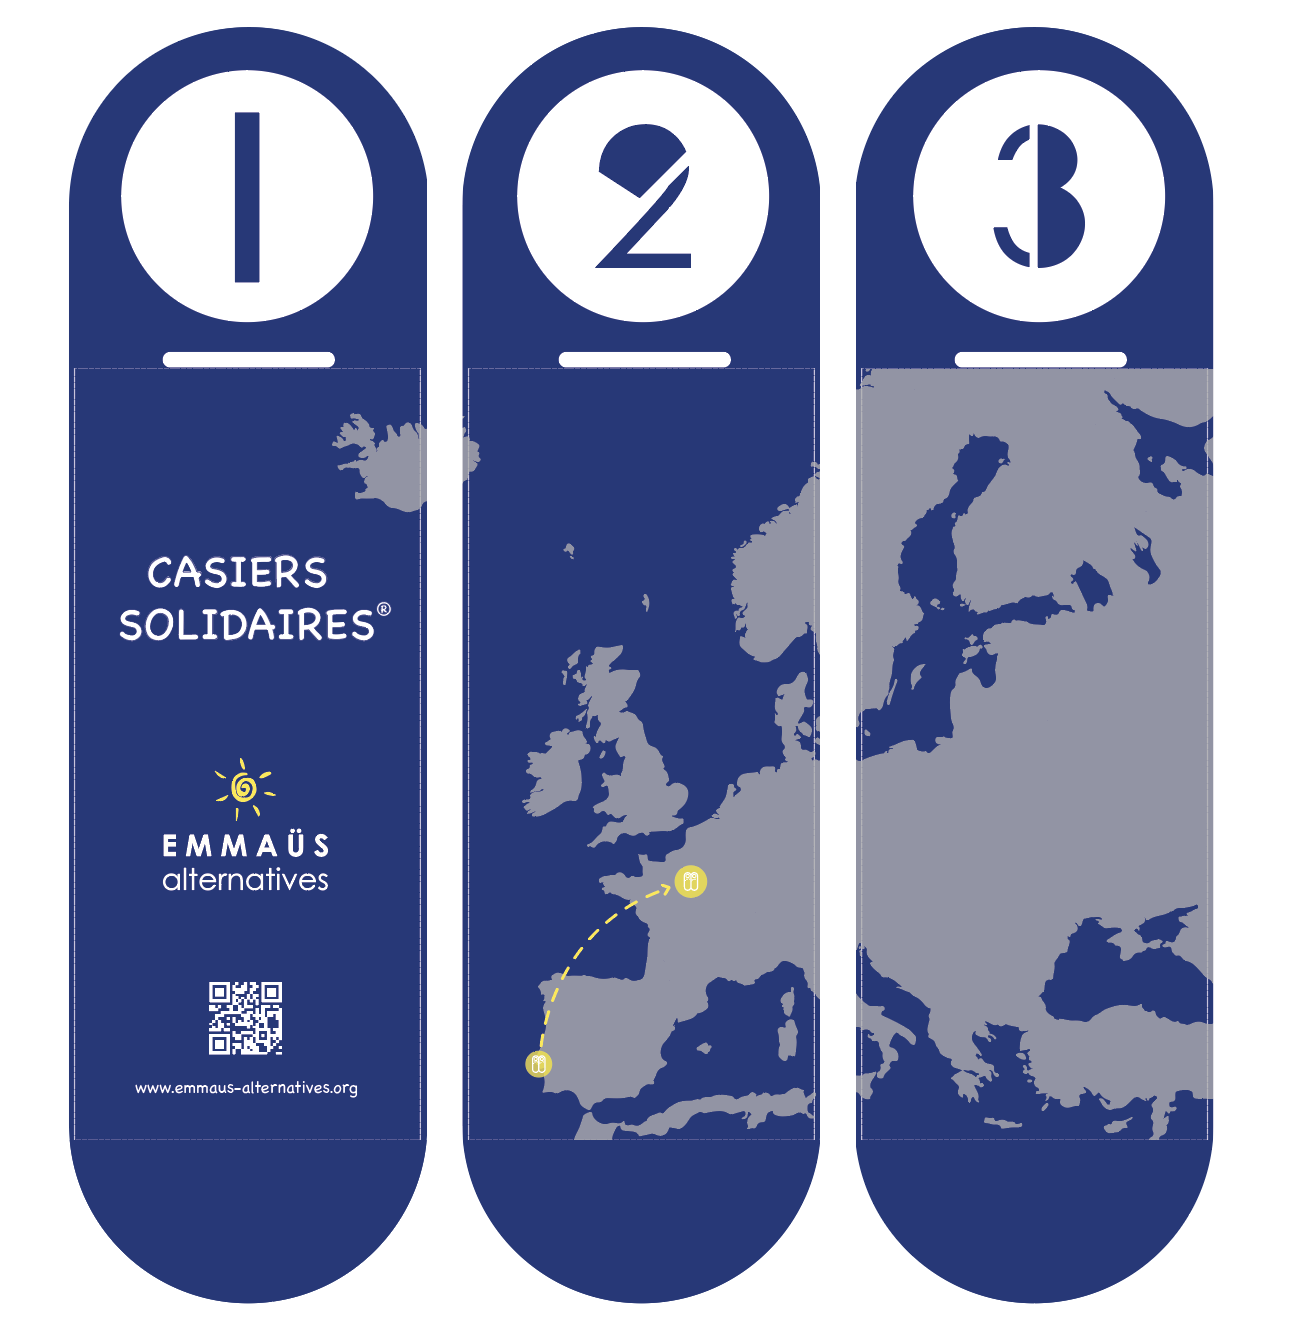 Casiers Solidaires®